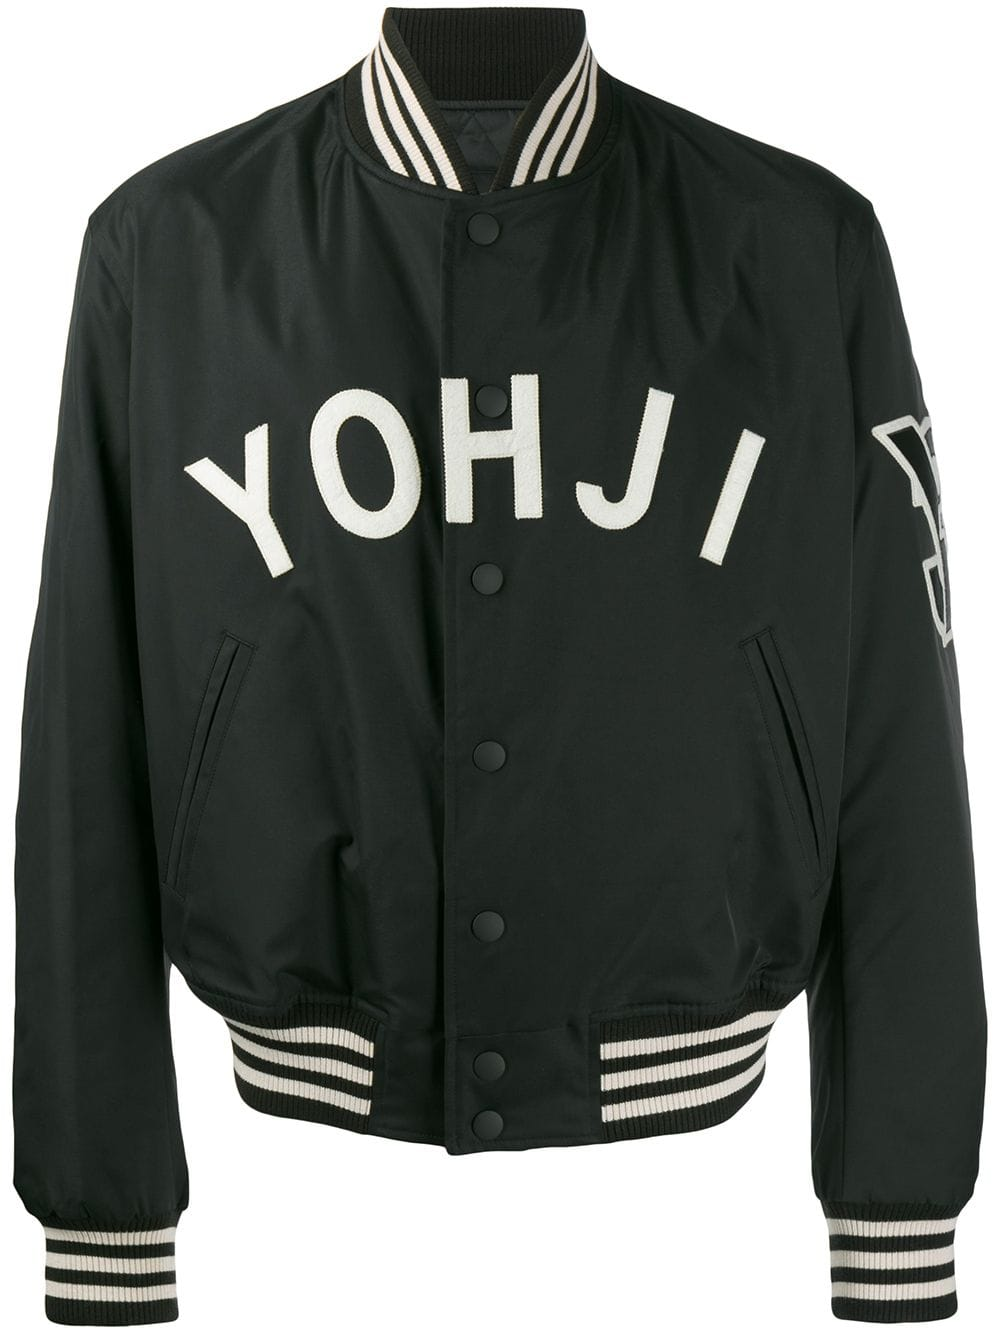 Y 3 Y 3 Yohji Embroidered Bomber Jacket Schwarz Embroidered Bomber Jacket Jackets Black Bomber Jacket